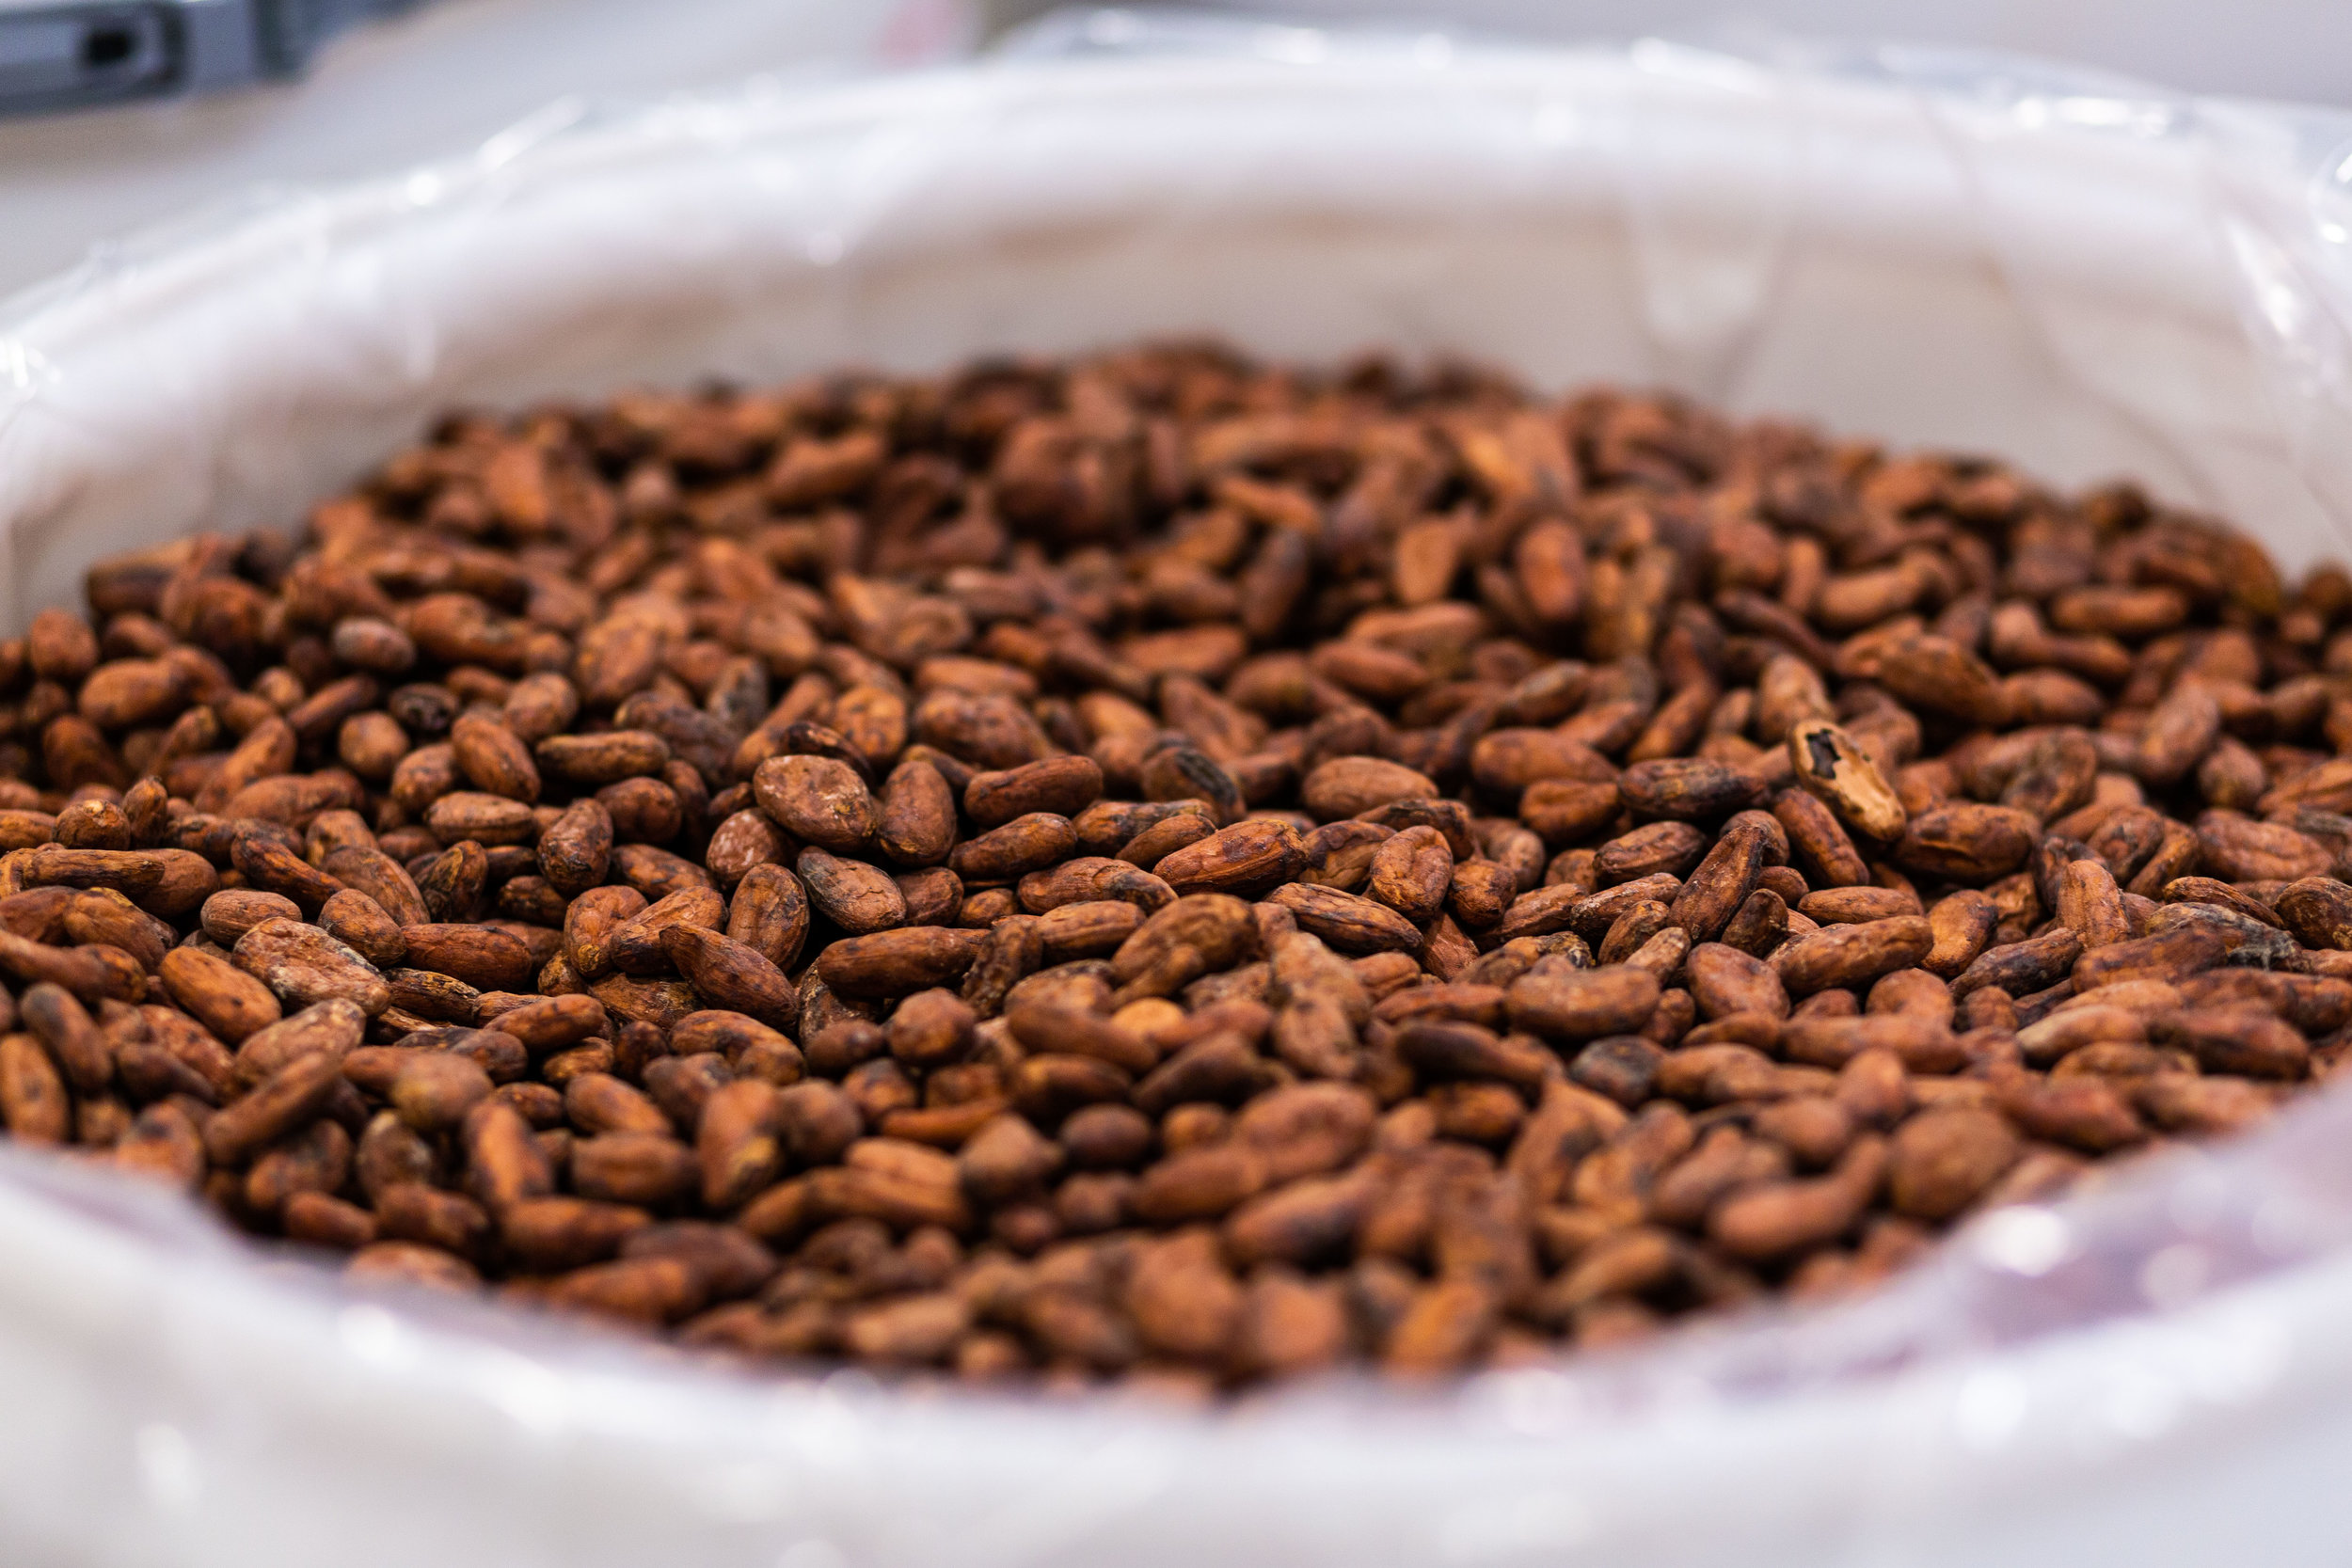 Cacao beans are processed and converted to a finished product in Sudbury